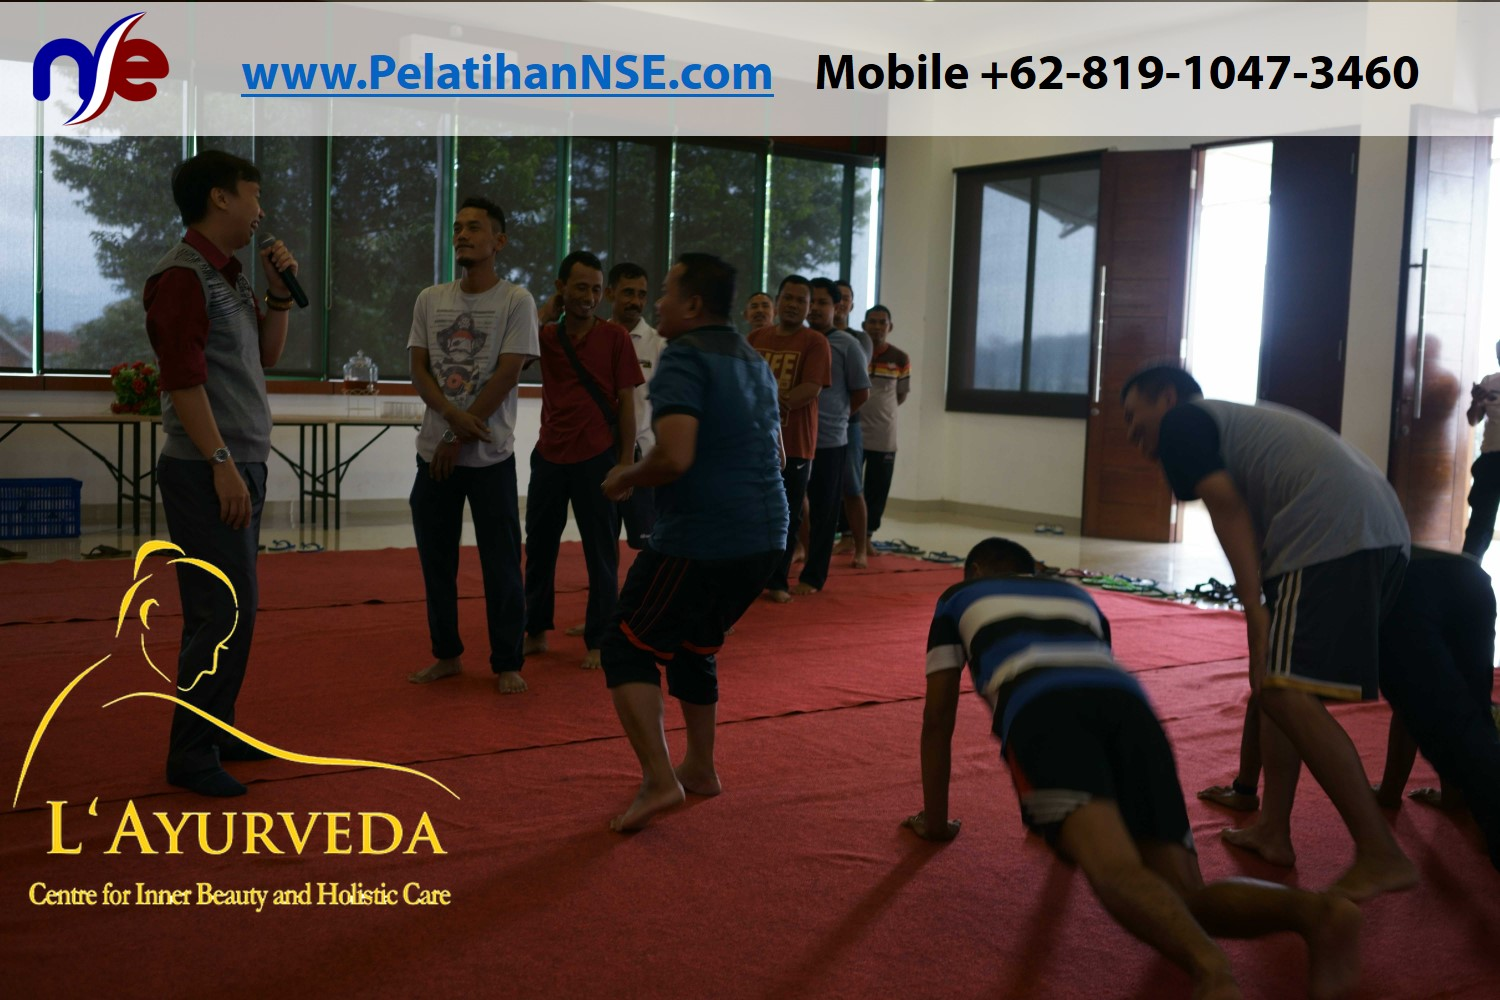 Happy Healthy Professional Kereta Api Indonesia 18-19 Oktober 2017 - Games di Ruangan